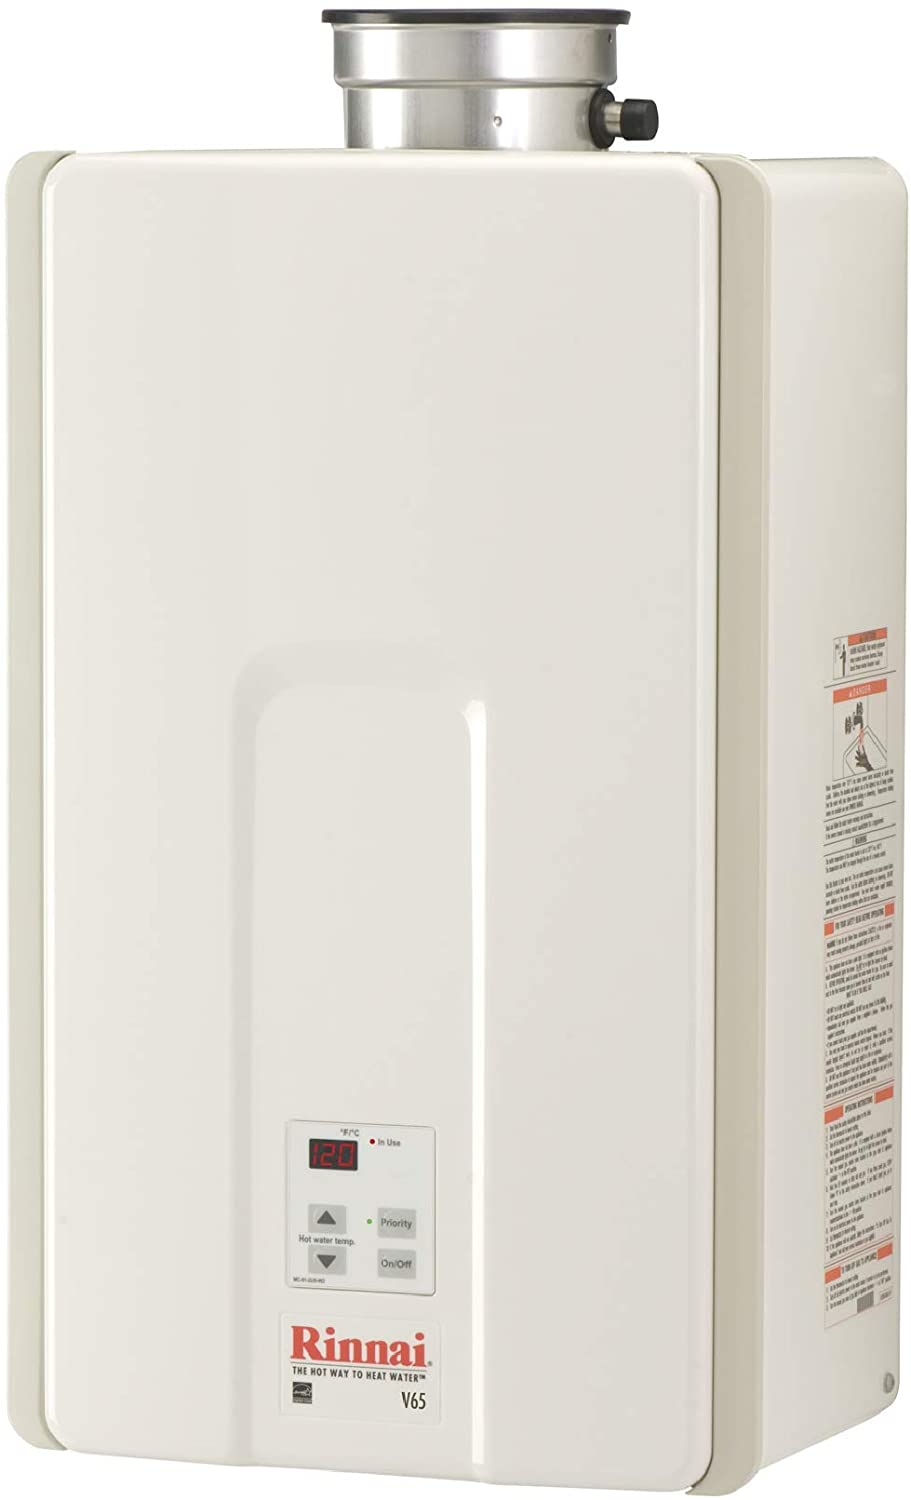 Rinnai V65IN Natural Gas Heater